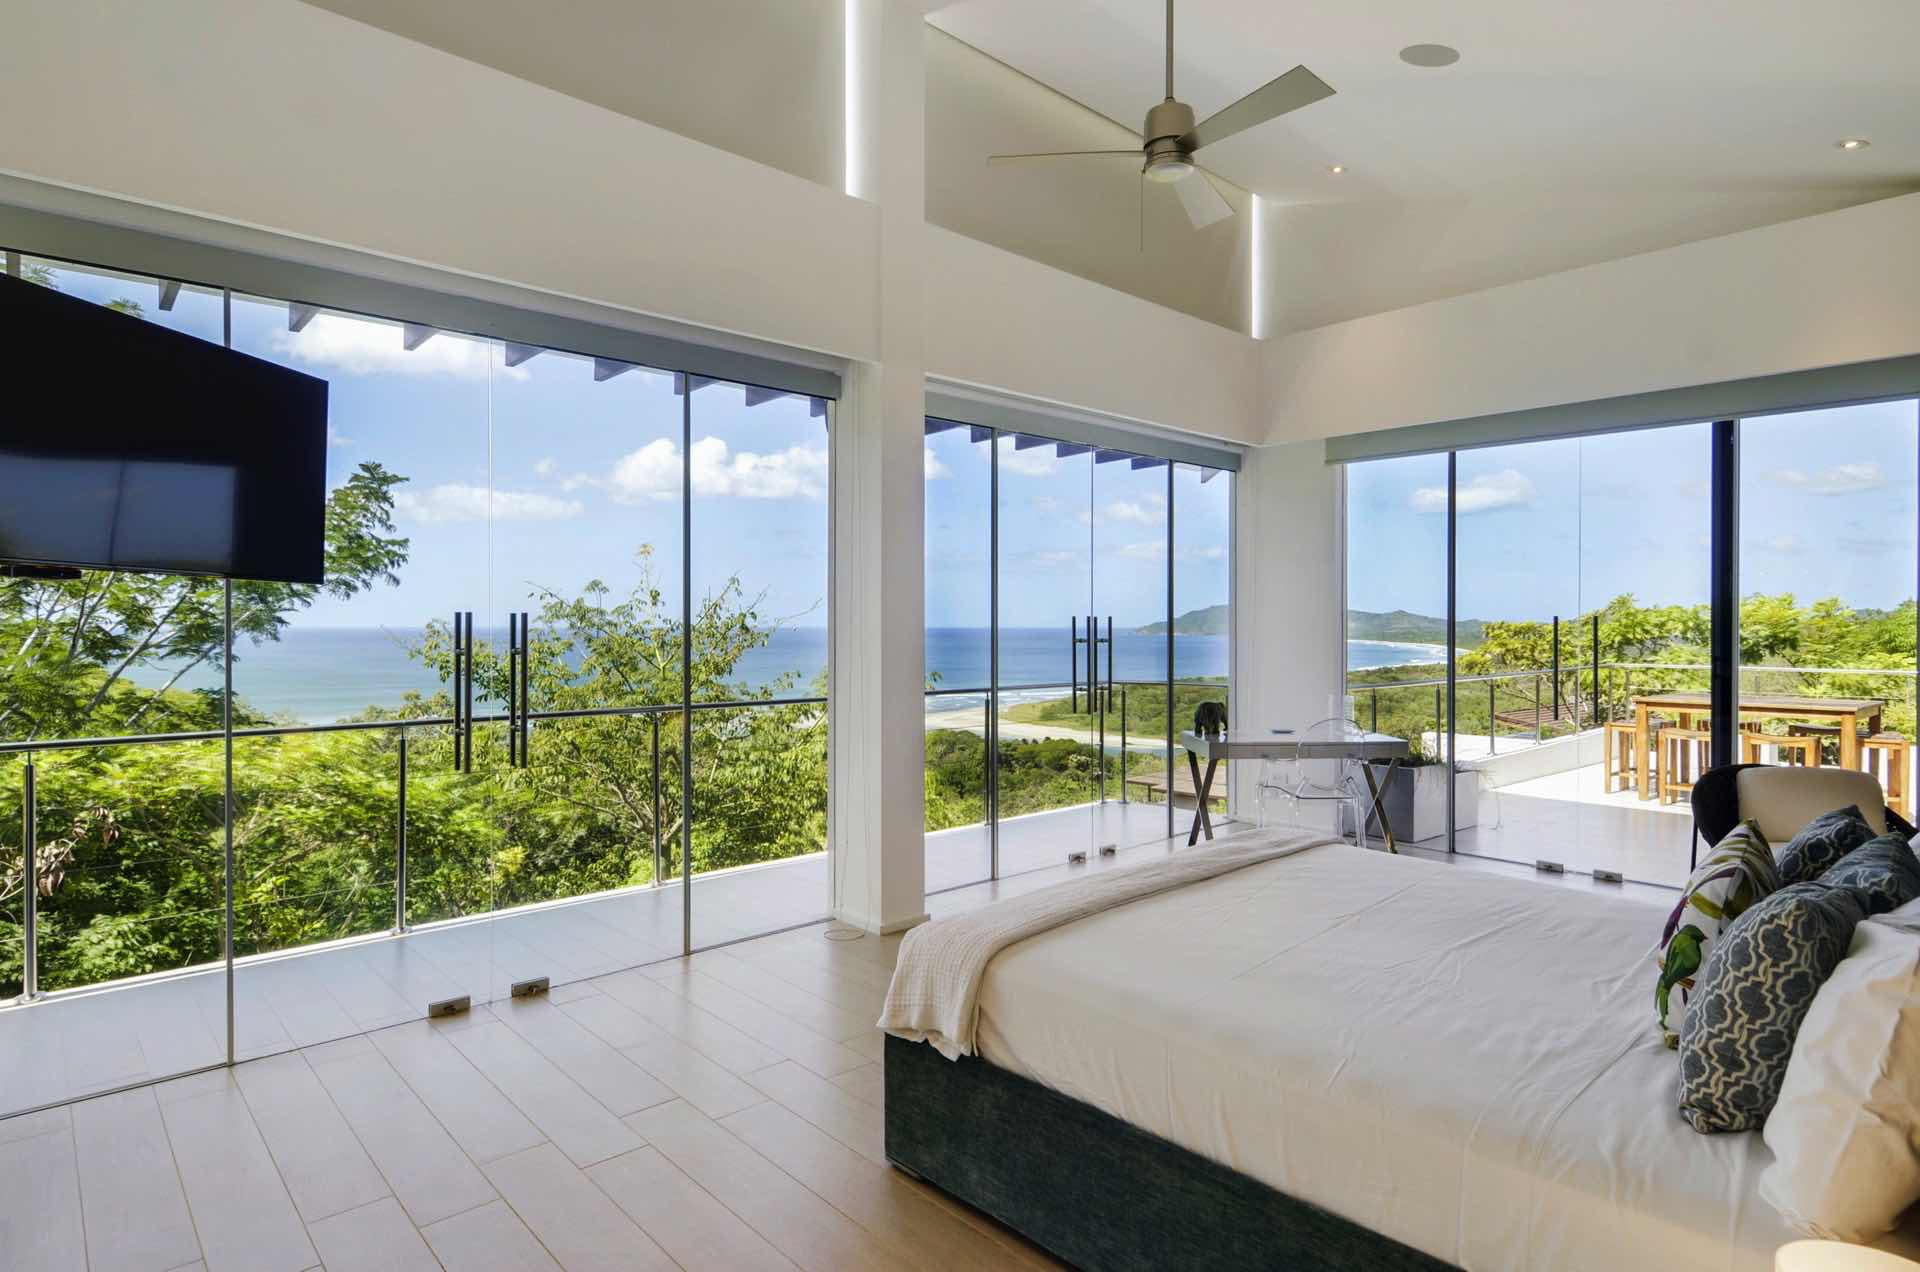 Imagine this view from bed? Once in a lifetime!